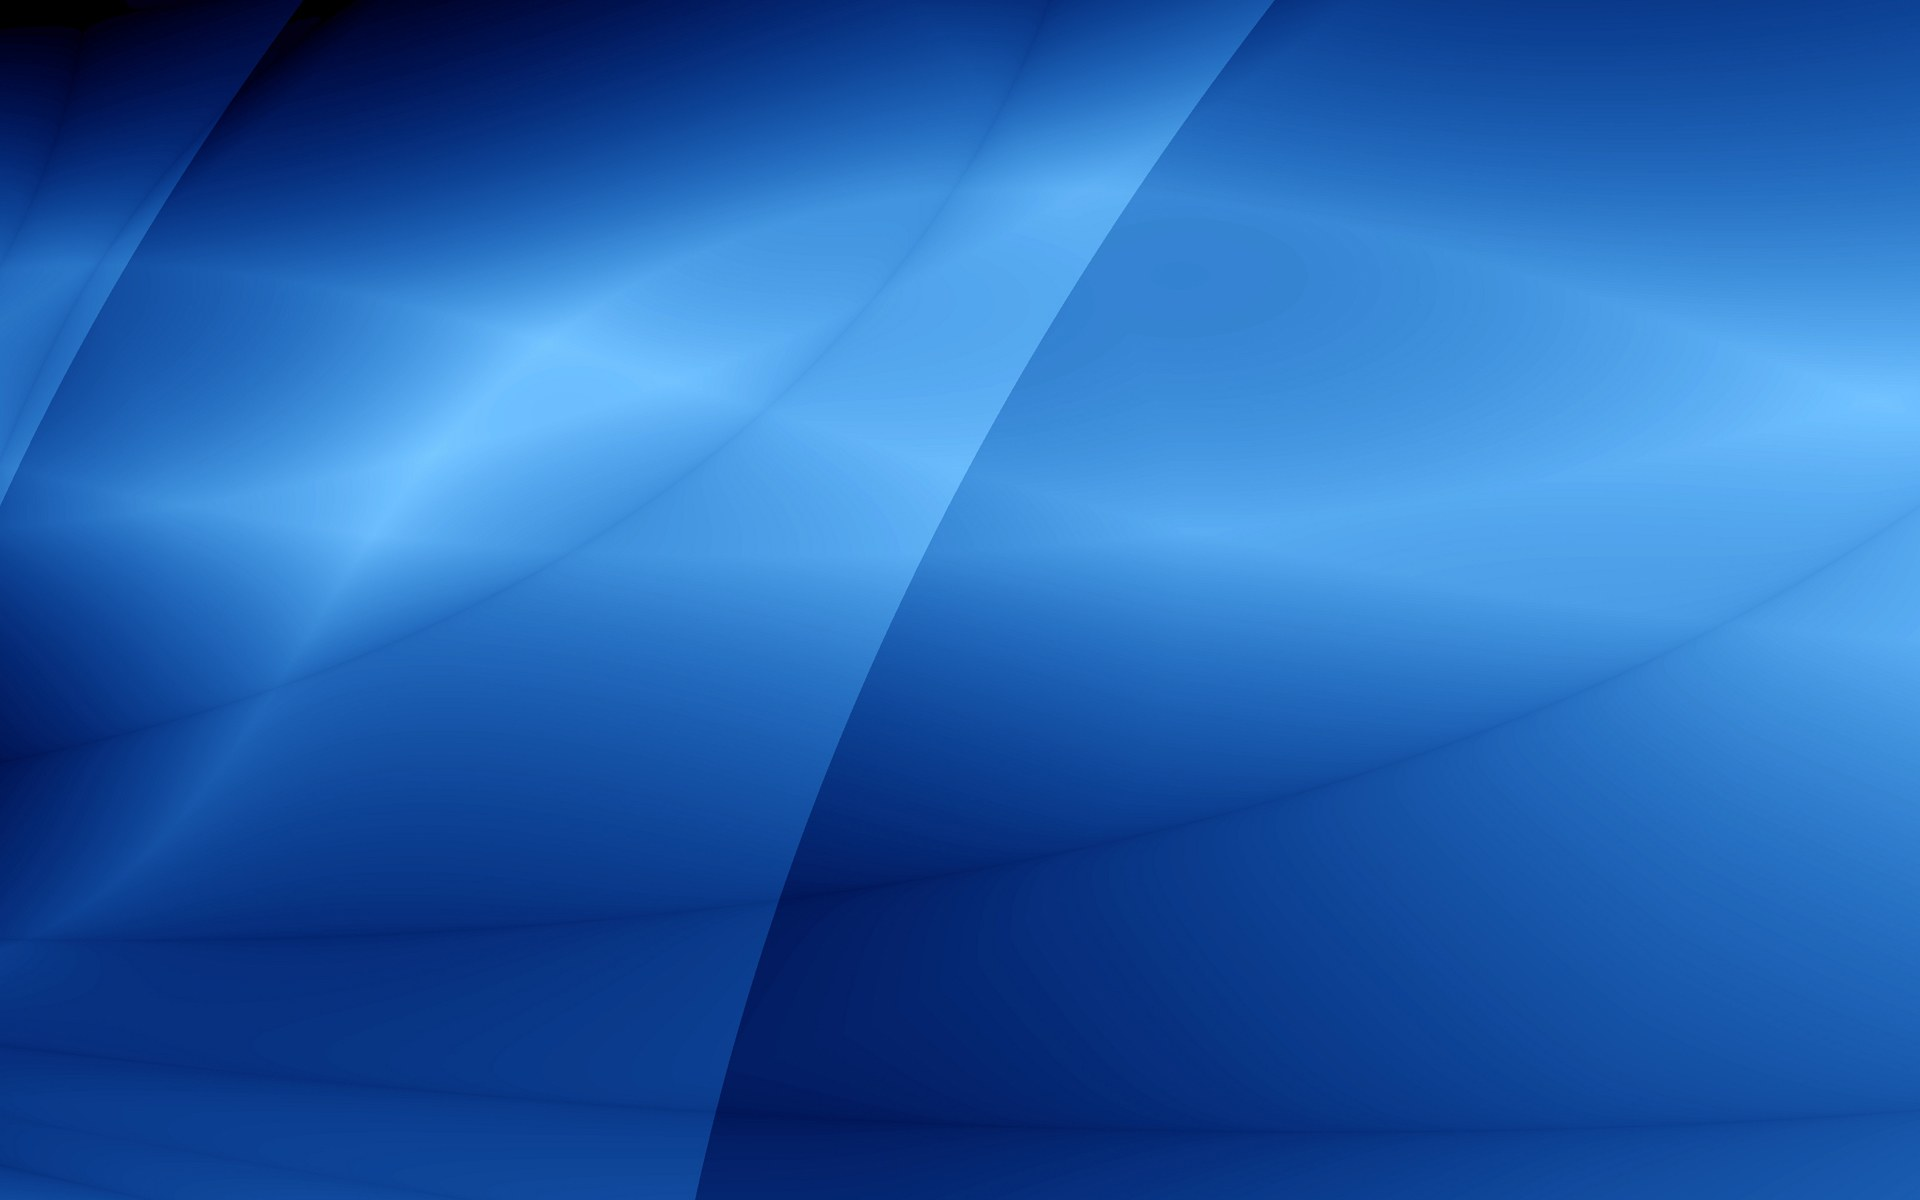 Blue Abstract Wallpaper Image HD 6560 Wallpaper 1920x1200